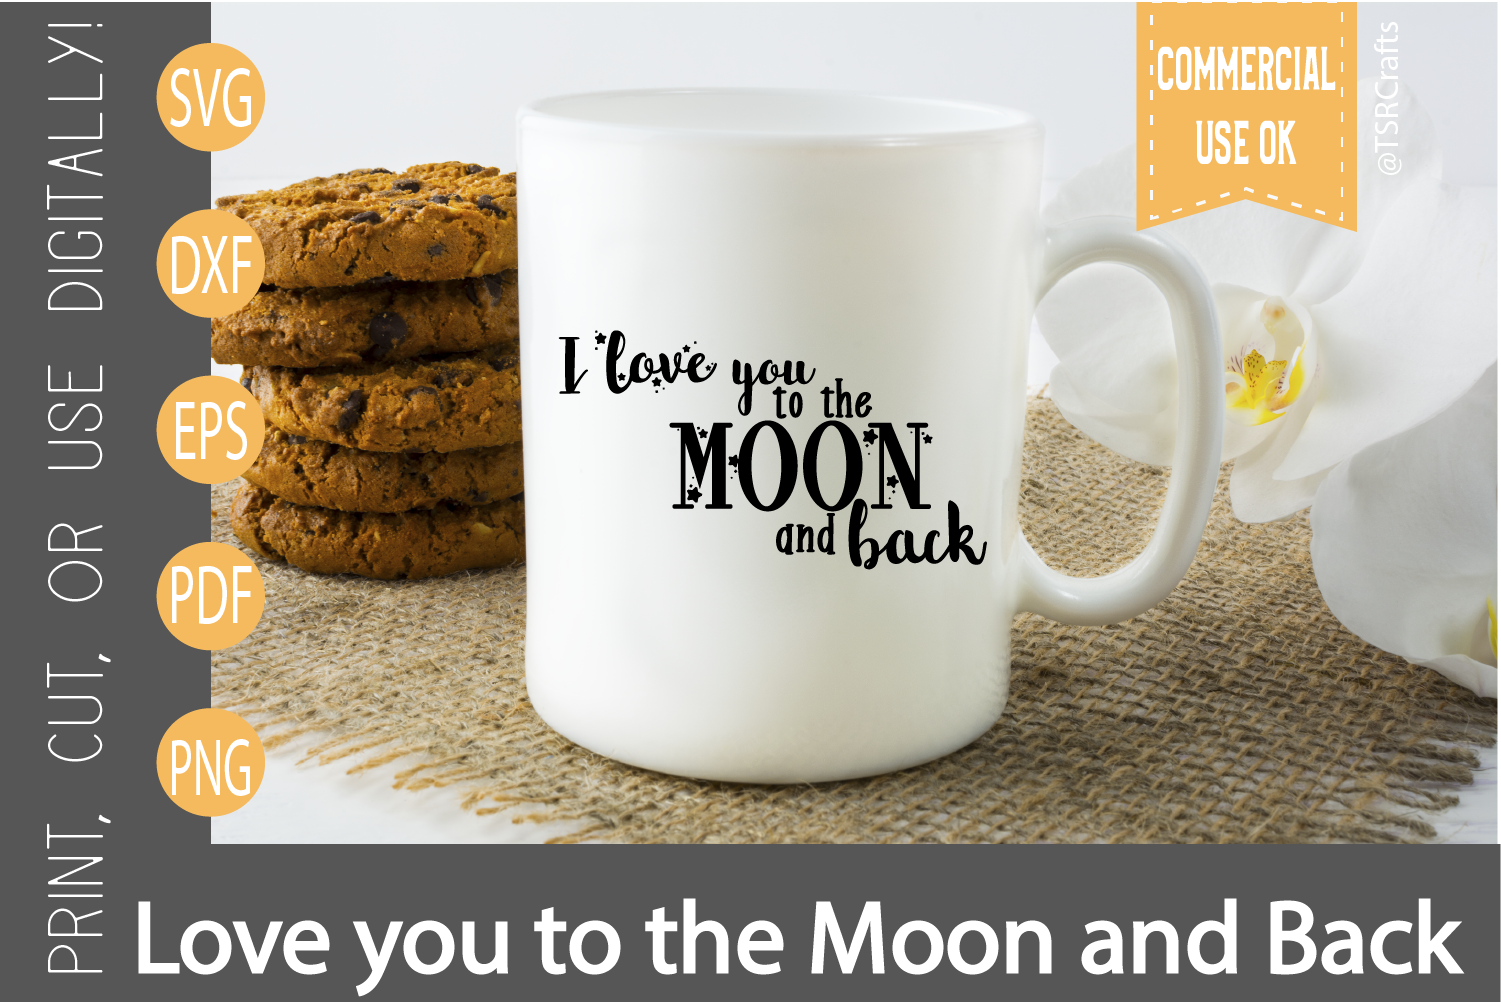 I love you to the moon and back SVG, DXF, Clipart & Cut File example image 2